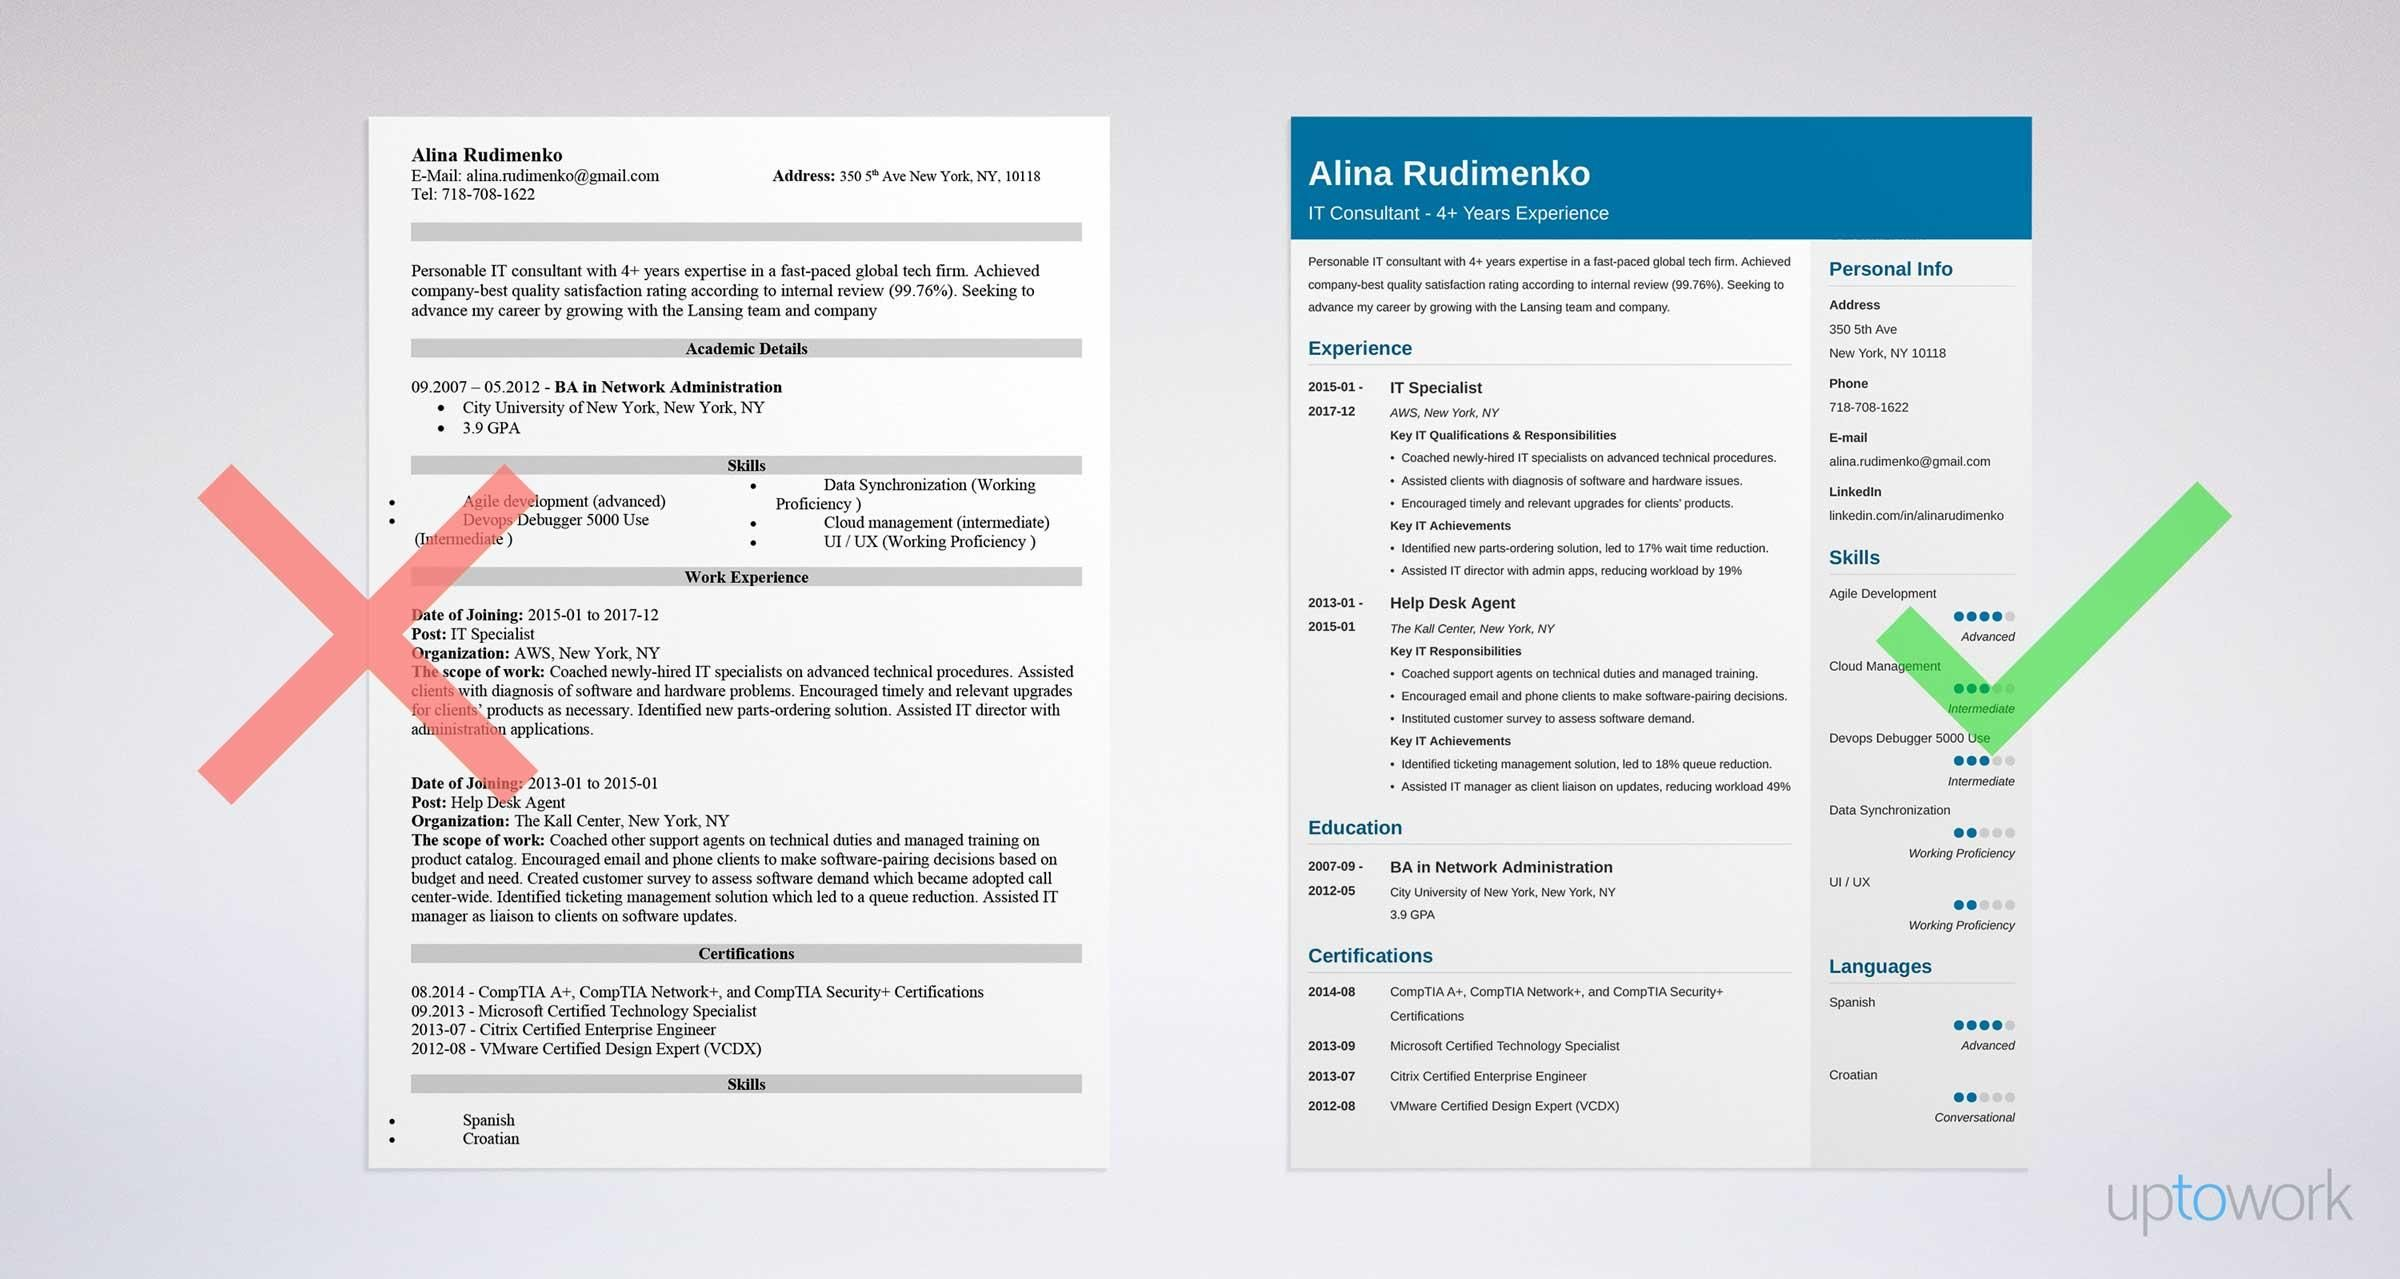 A stepbystep guide to writing an IT resume. 20